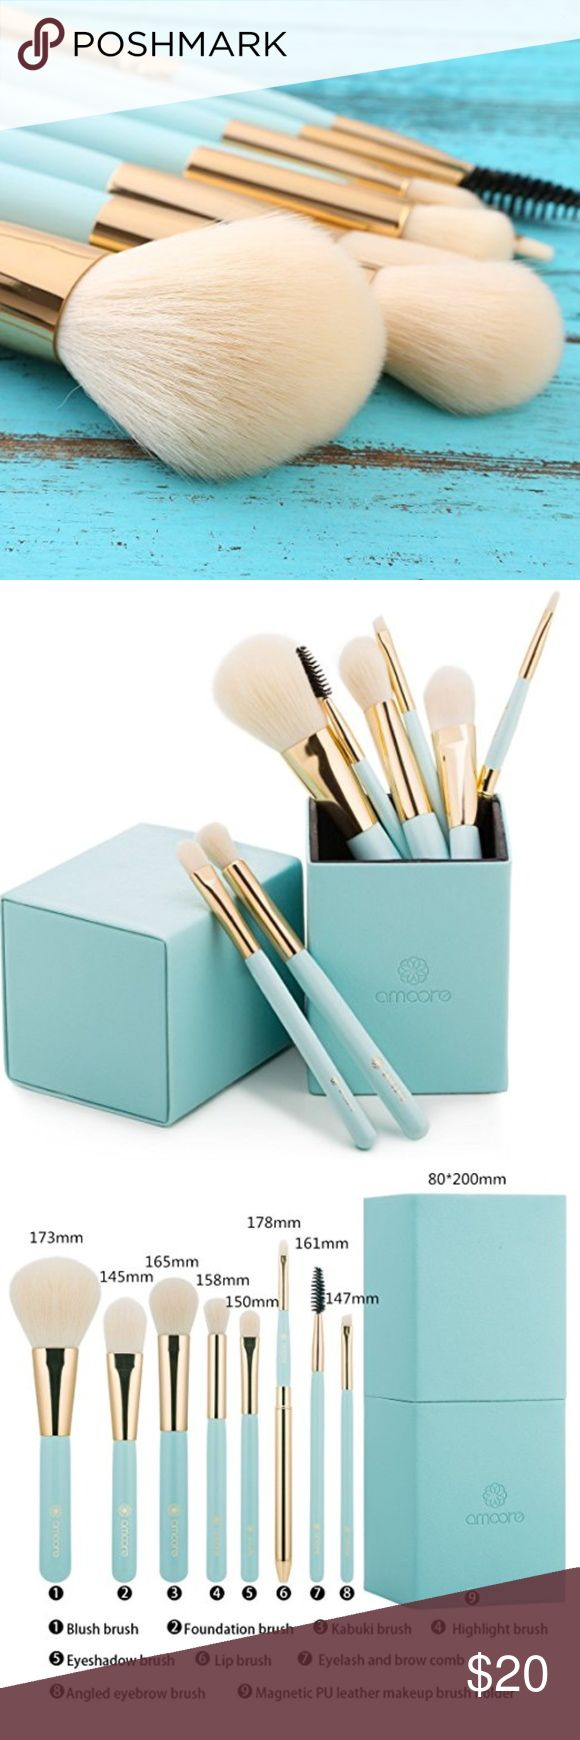 8 Piece Makeup Brush Set w/Magnetic Cup Holder 100% synthetic bristle brushes that are soft, dense and smooth. Perfect for contouring, highlighting and blending. Turquoise blue and gold handle. Comes with a PU leather makeup brush cup holder with magnetic closure.  Includes: 1*Foundation brush 1*Kabuki brush 1*Blush brush 1*Eye shadow brush 1*Eyelash and brow comb 1*Angled eyebrow brush 1*Highlight brush 1*Lip brush   Brand new & sealed in original packaging. Makeup Brushes & Tools